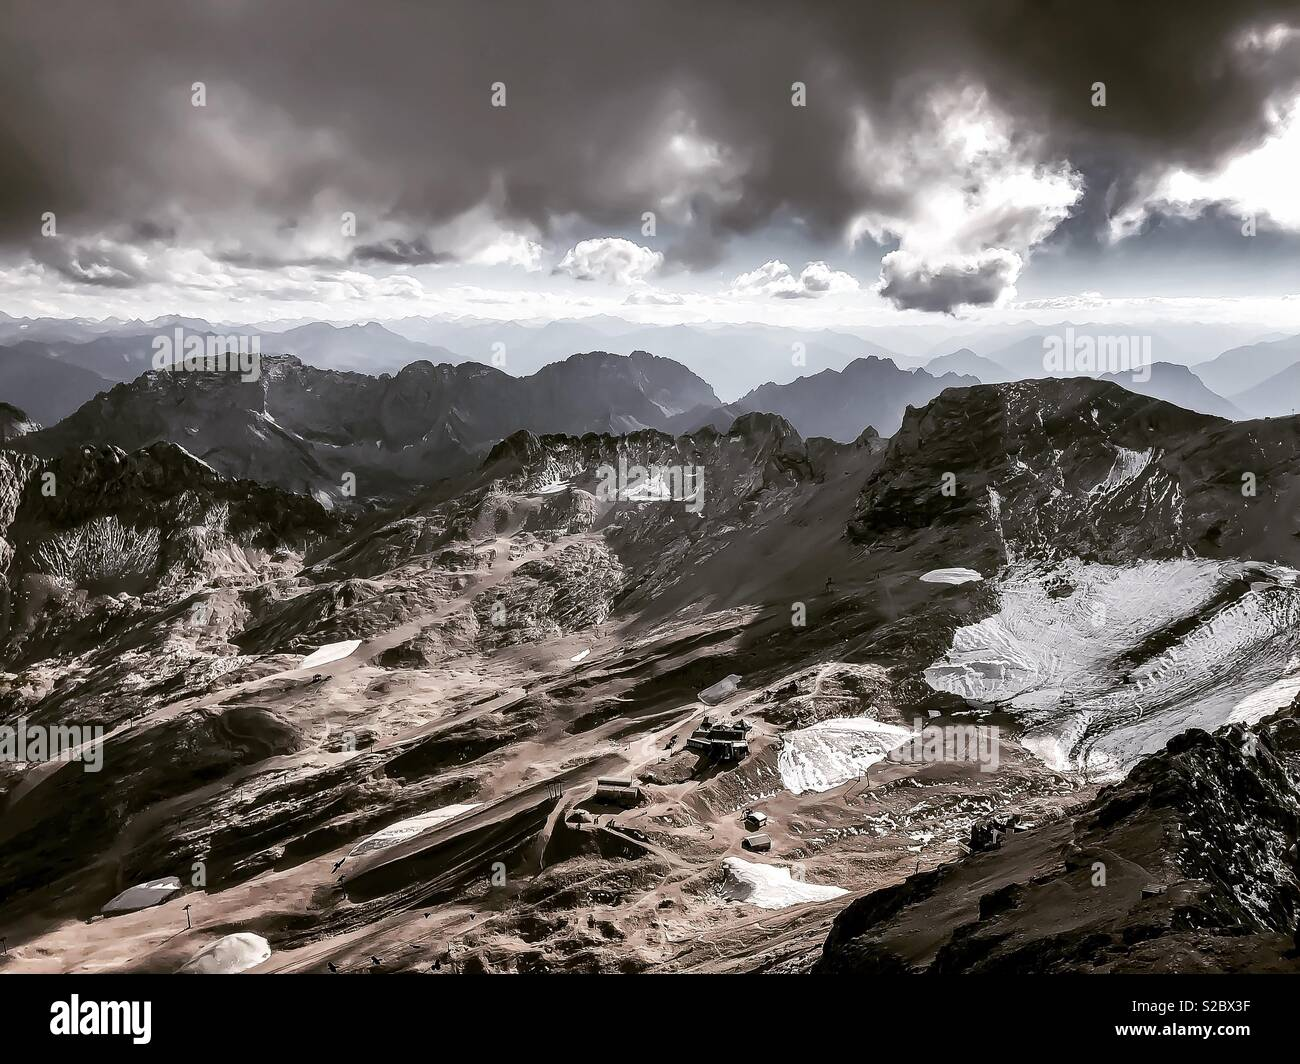 The view from the top of Zugspitze - Stock Image